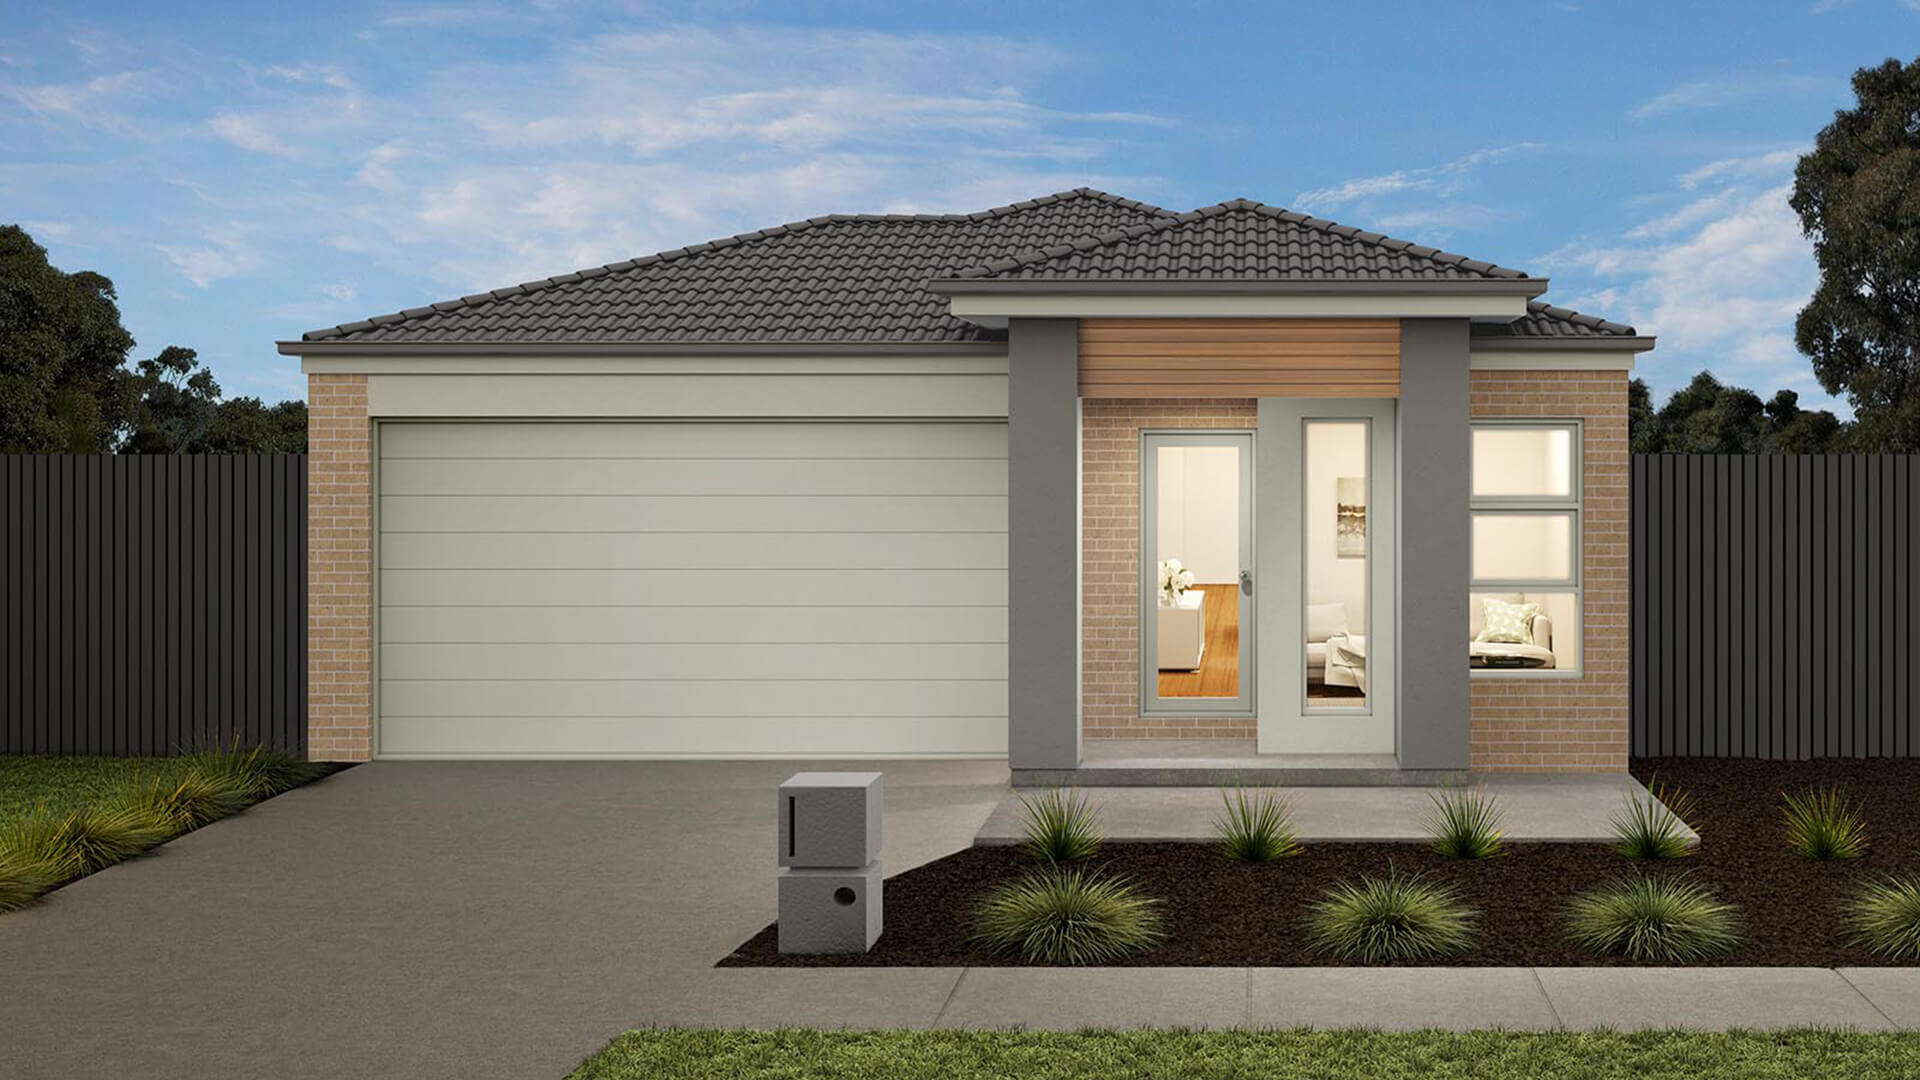 EASYLIVING RIVIERA MANCHESTER 10.5 Exterior Image 2